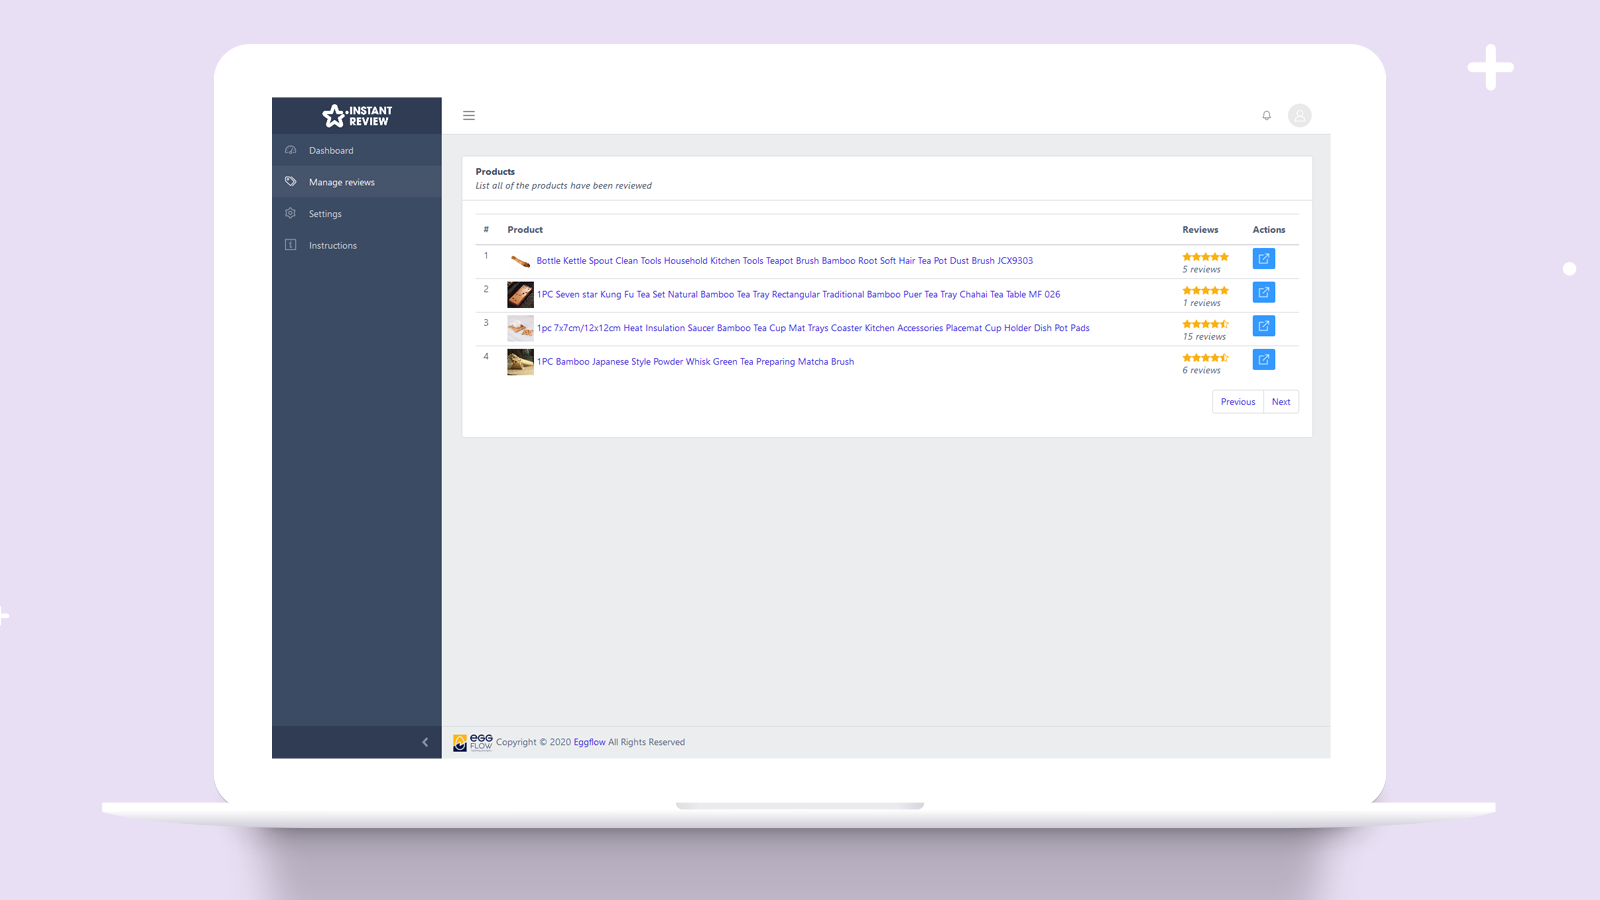 Dashboard overview about review products and product reviews